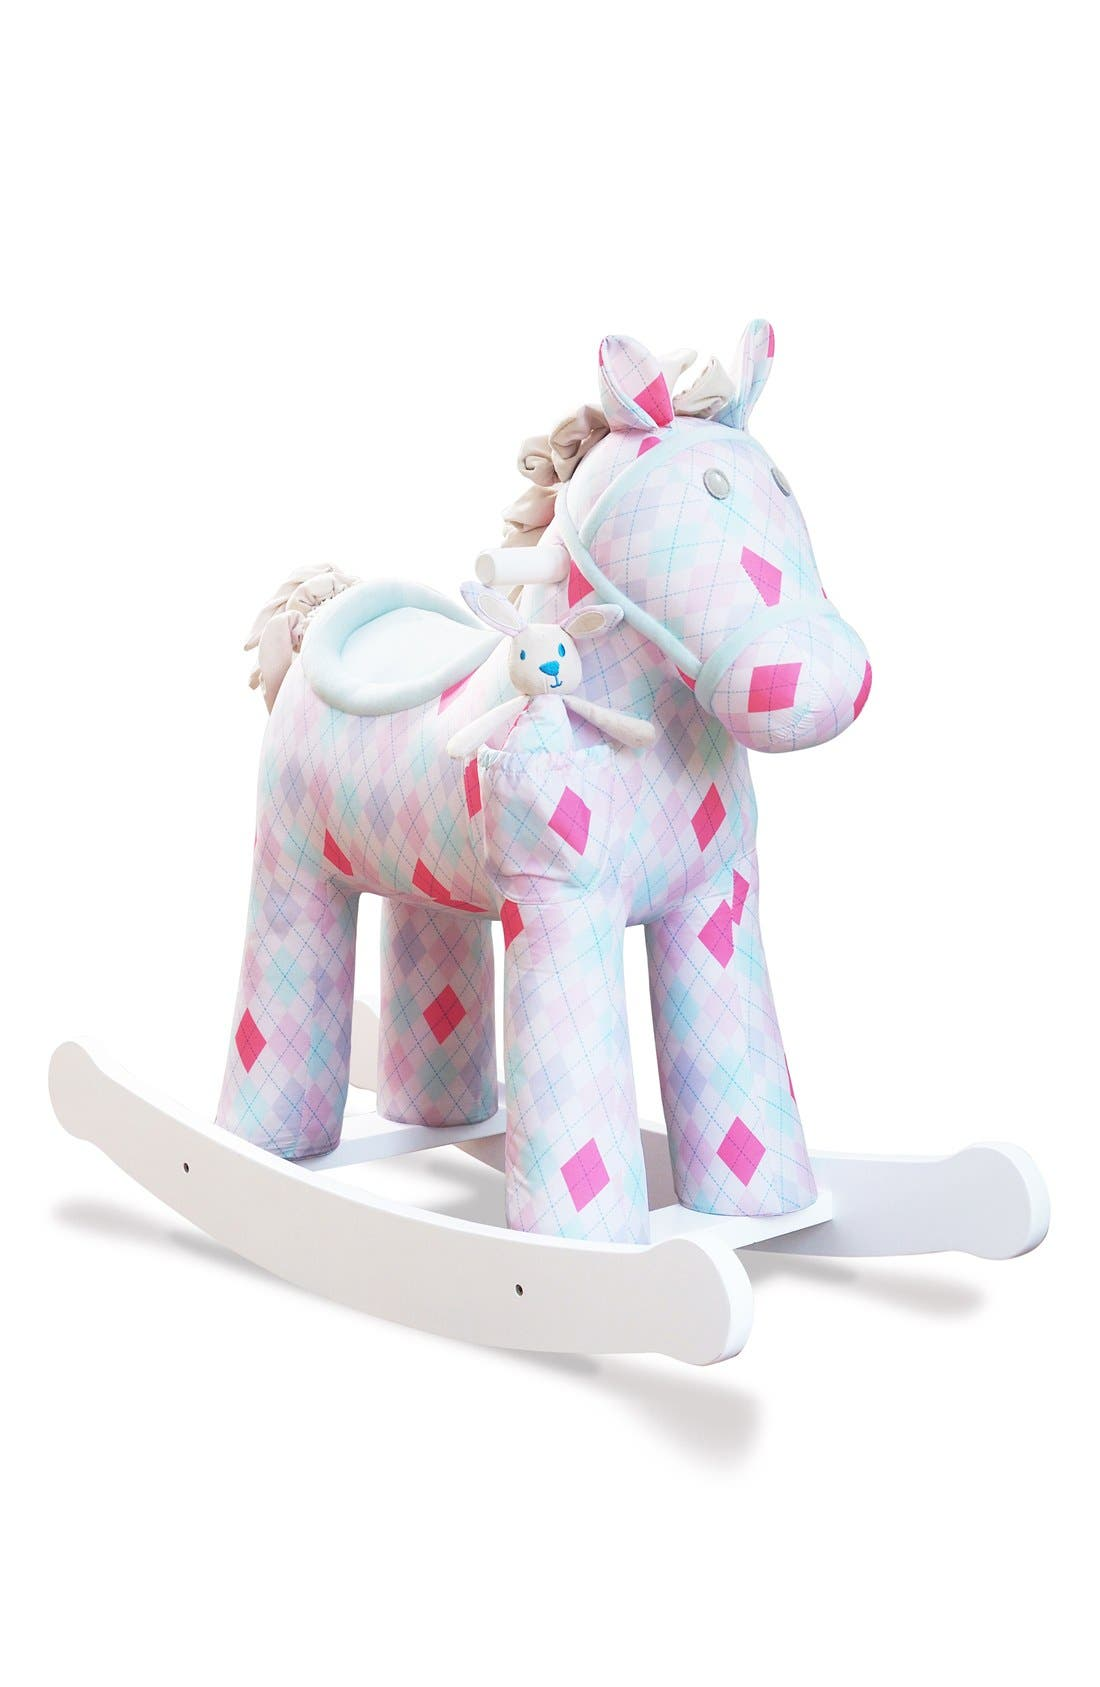 Florence & Floop Rocking Horse & Stuffed Animal,                             Main thumbnail 1, color,                             650